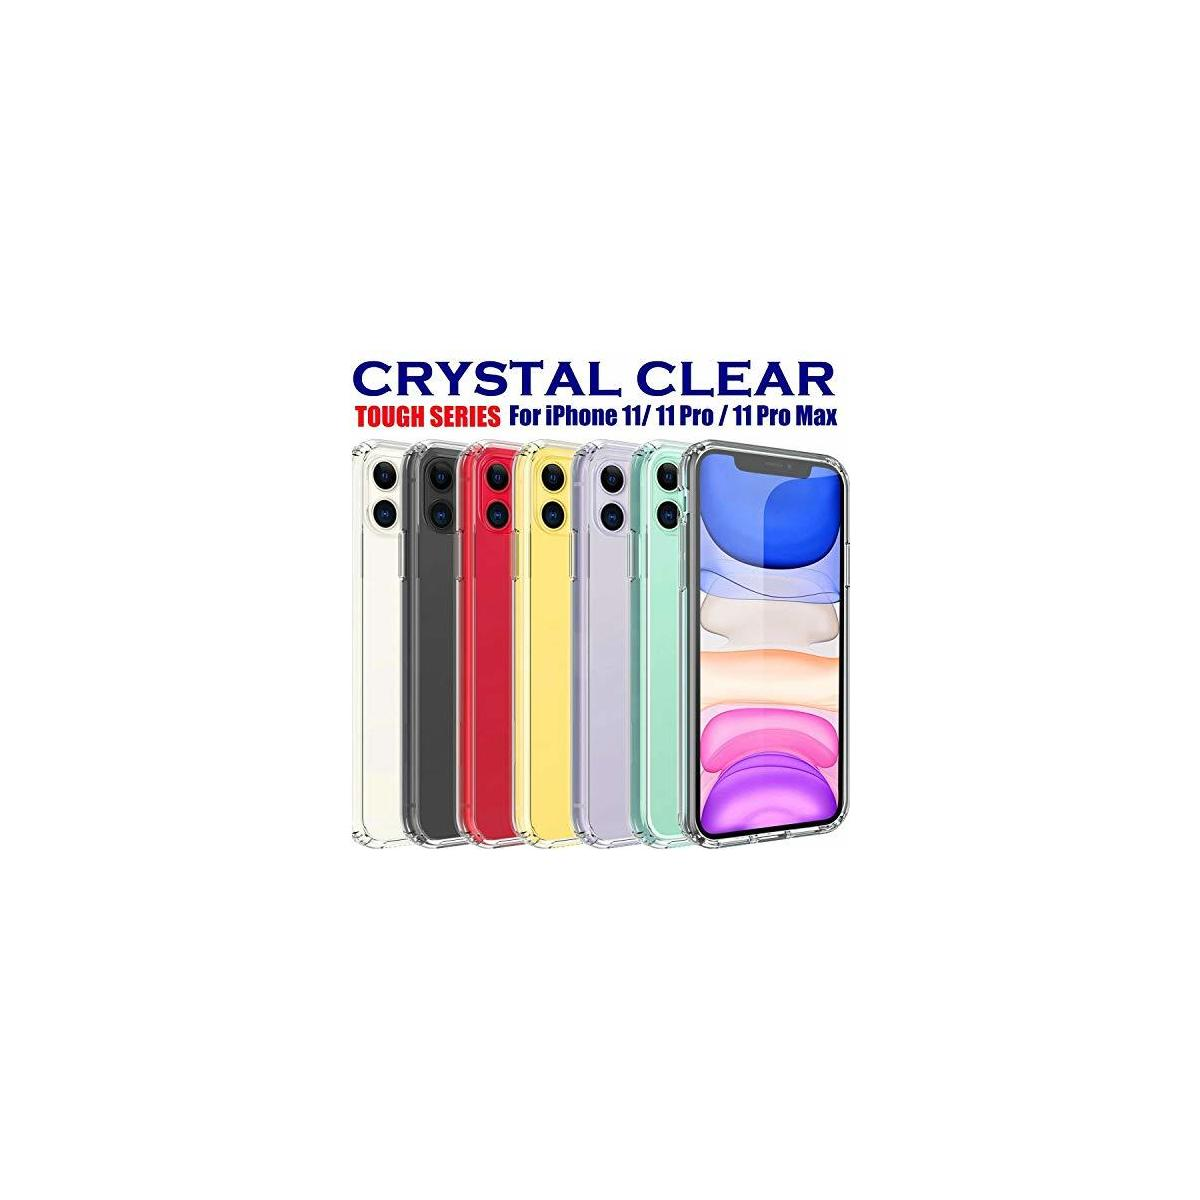 JERNI iPhone 11 Crystal Clear Case | Shock Absorption for Corners | Shockproof,Transparent | Anti-Scratch Bumper Cover Protective Case with Soft TPU Cushion Apple 11 6.1 Inch 2019 (iPhone 11)